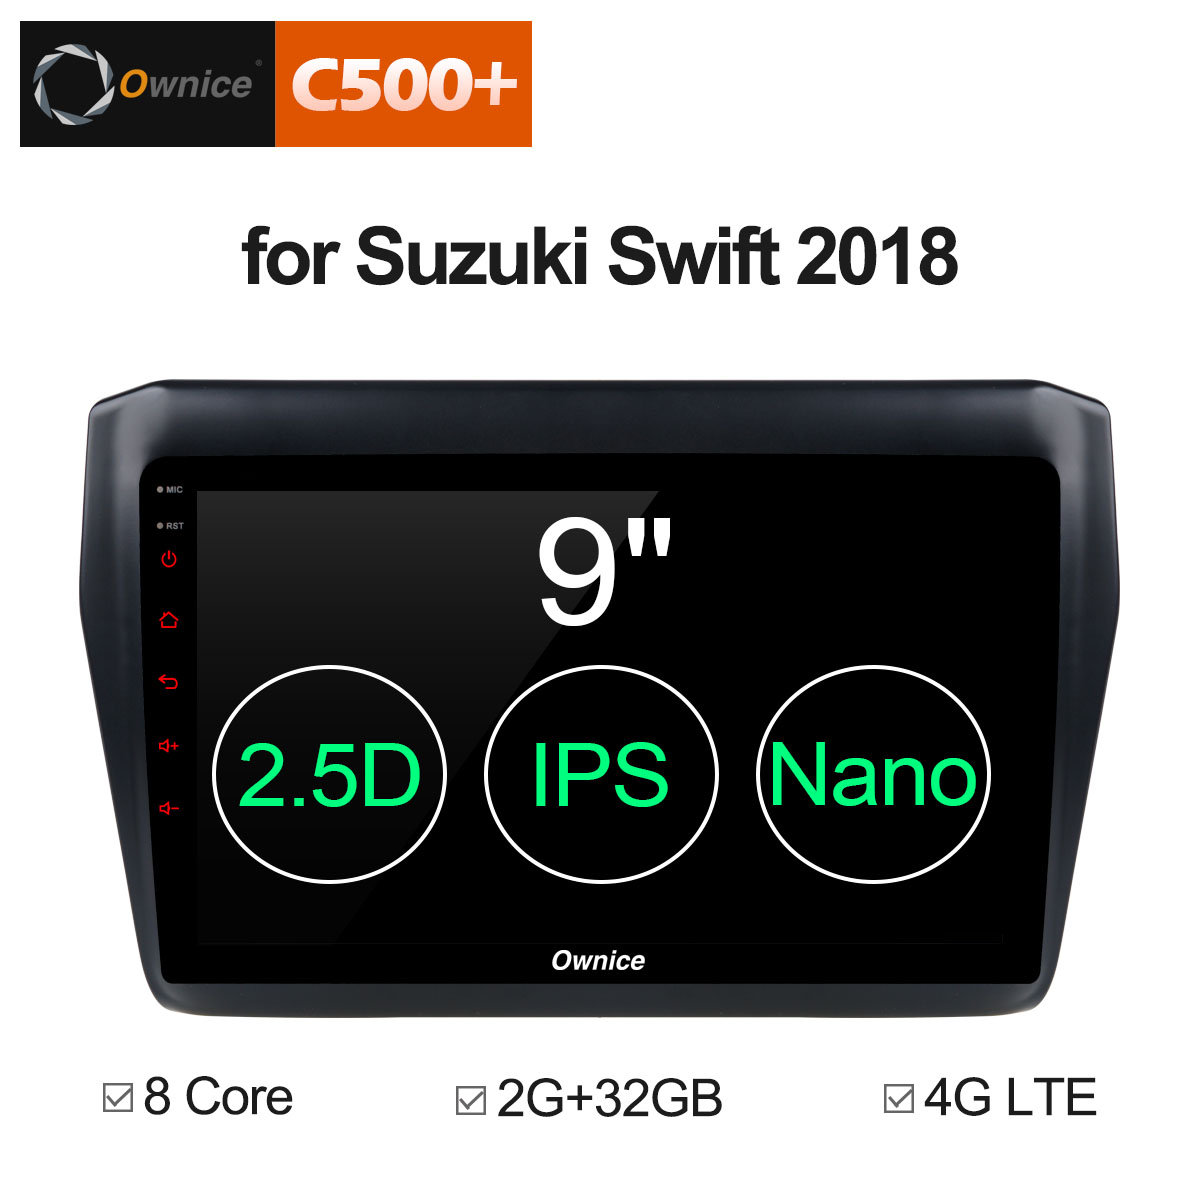 Ownice C500+ G10 Android 8.1 For SUZUKI SWIFT 2018 Octa Core 2G RAM 32G ROM 8 CORE Car DVD Player GPS car RDS Radio wifi 4G LTE ownice c500 g10 octa core 2gb ram 32g rom android car dvd 8 1 gps for mazda 6 summit 2009 2015 wifi 4g lte radio dab dvr